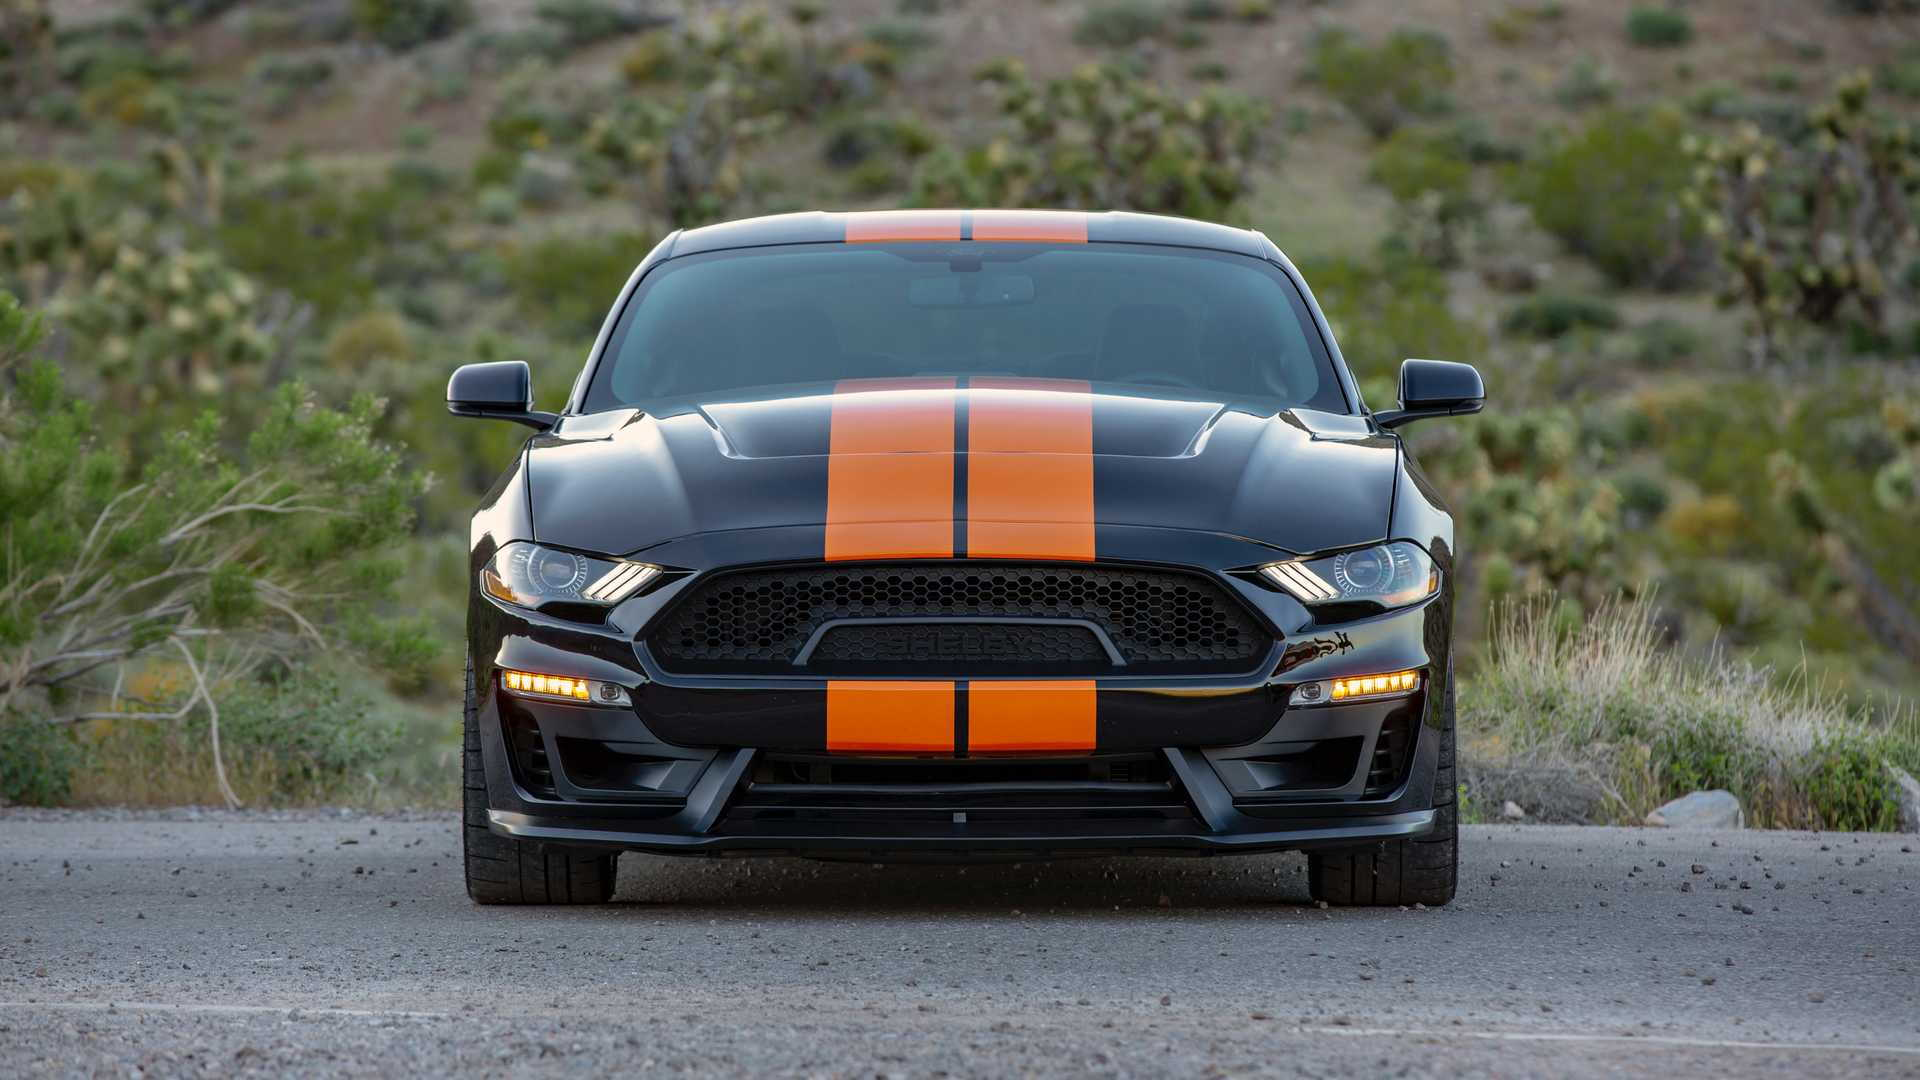 Sixt Ford Shelby Mustang GT-S rental car special edition